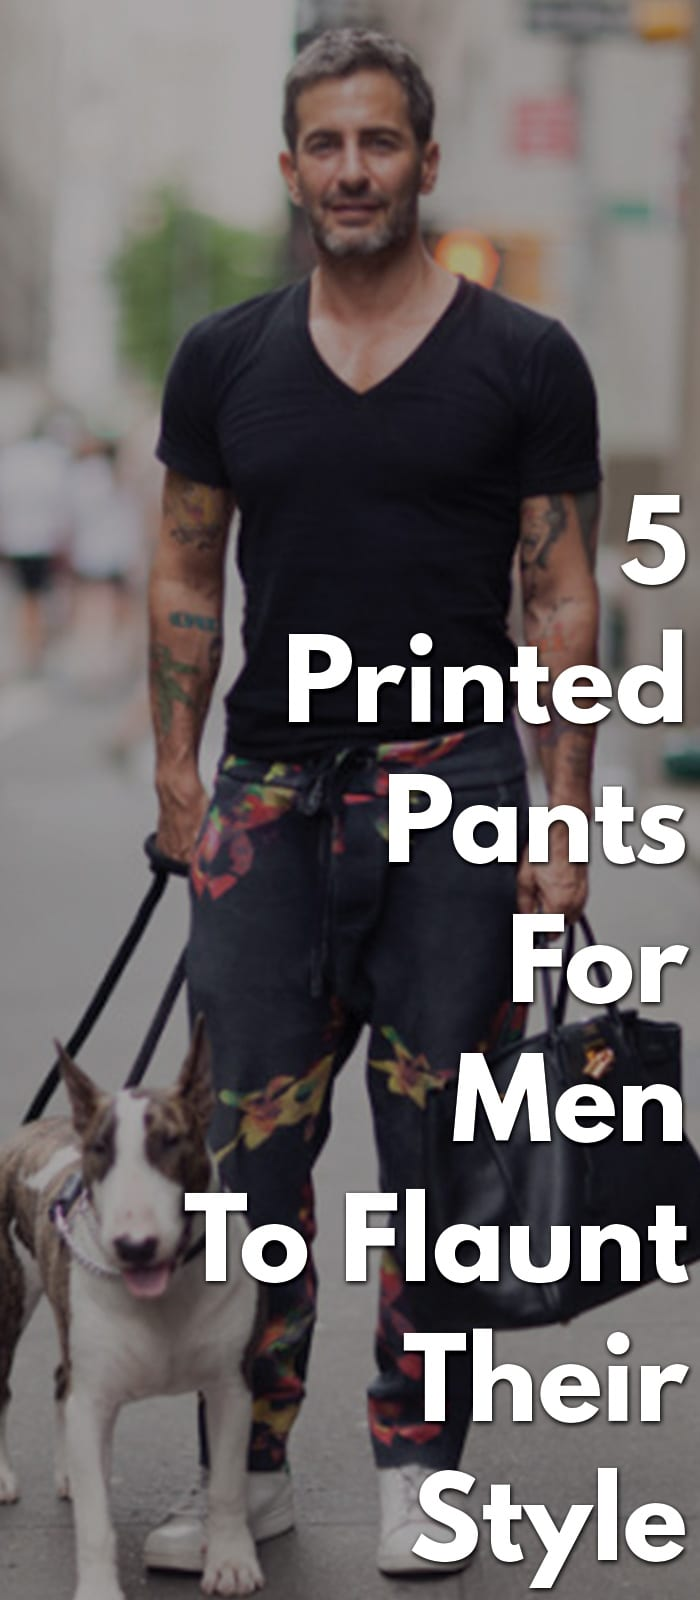 5 Printed Pants For Men